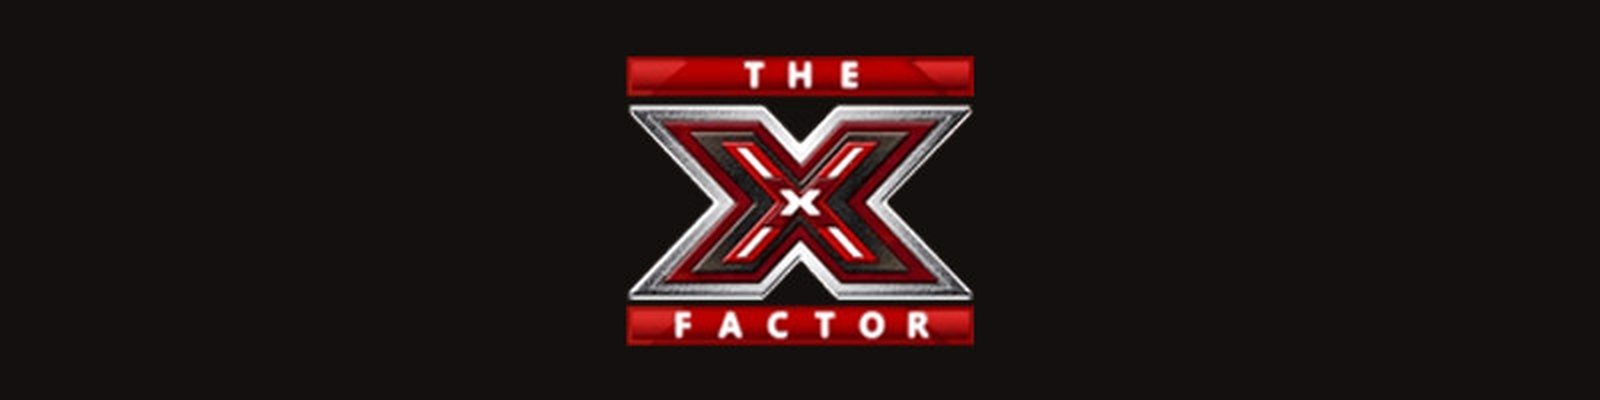 The The X Factor Online Slot Demo Game by Gamesys